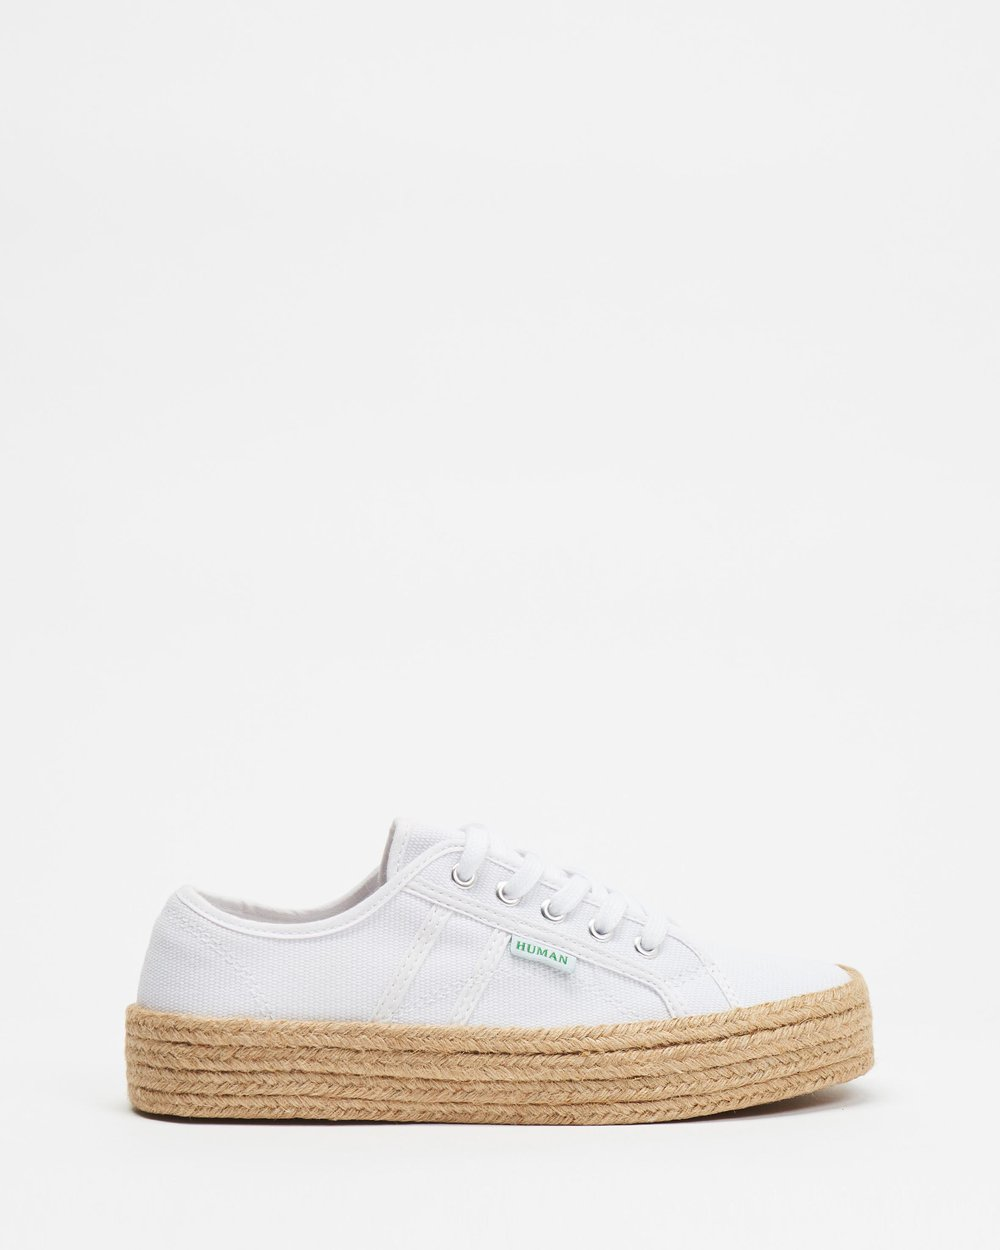 HUMAN PREMIUM Charlotte Espadrille Sneaker White Canvas One Country Mouse Yamba